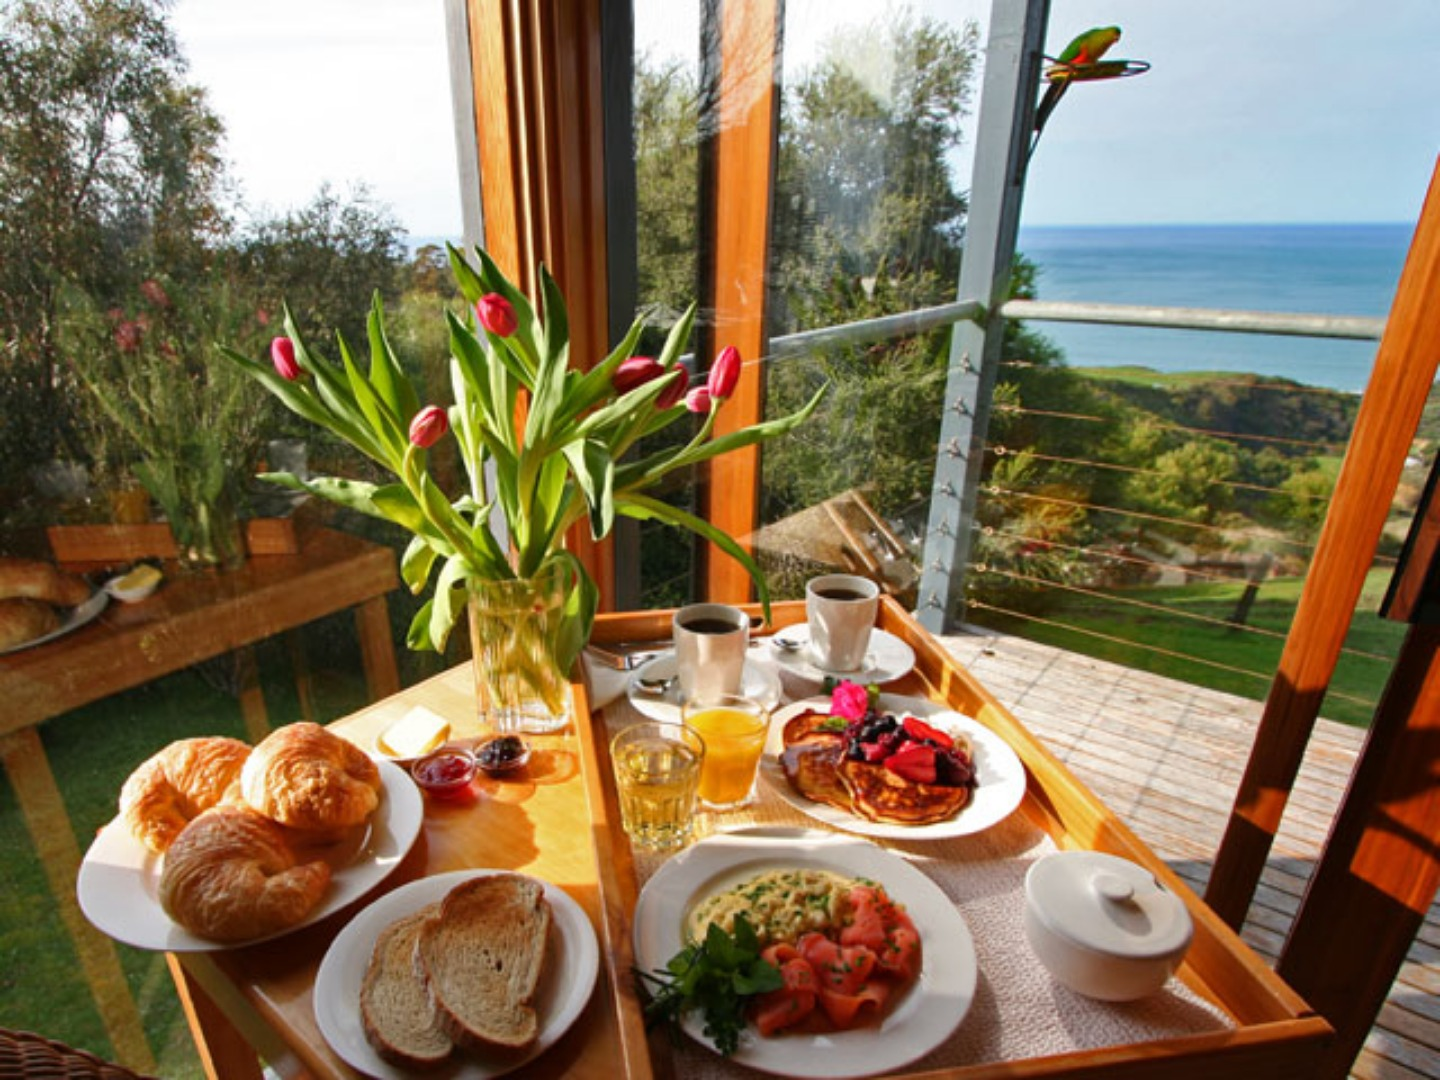 A plate of food on a table at A Room with a View.